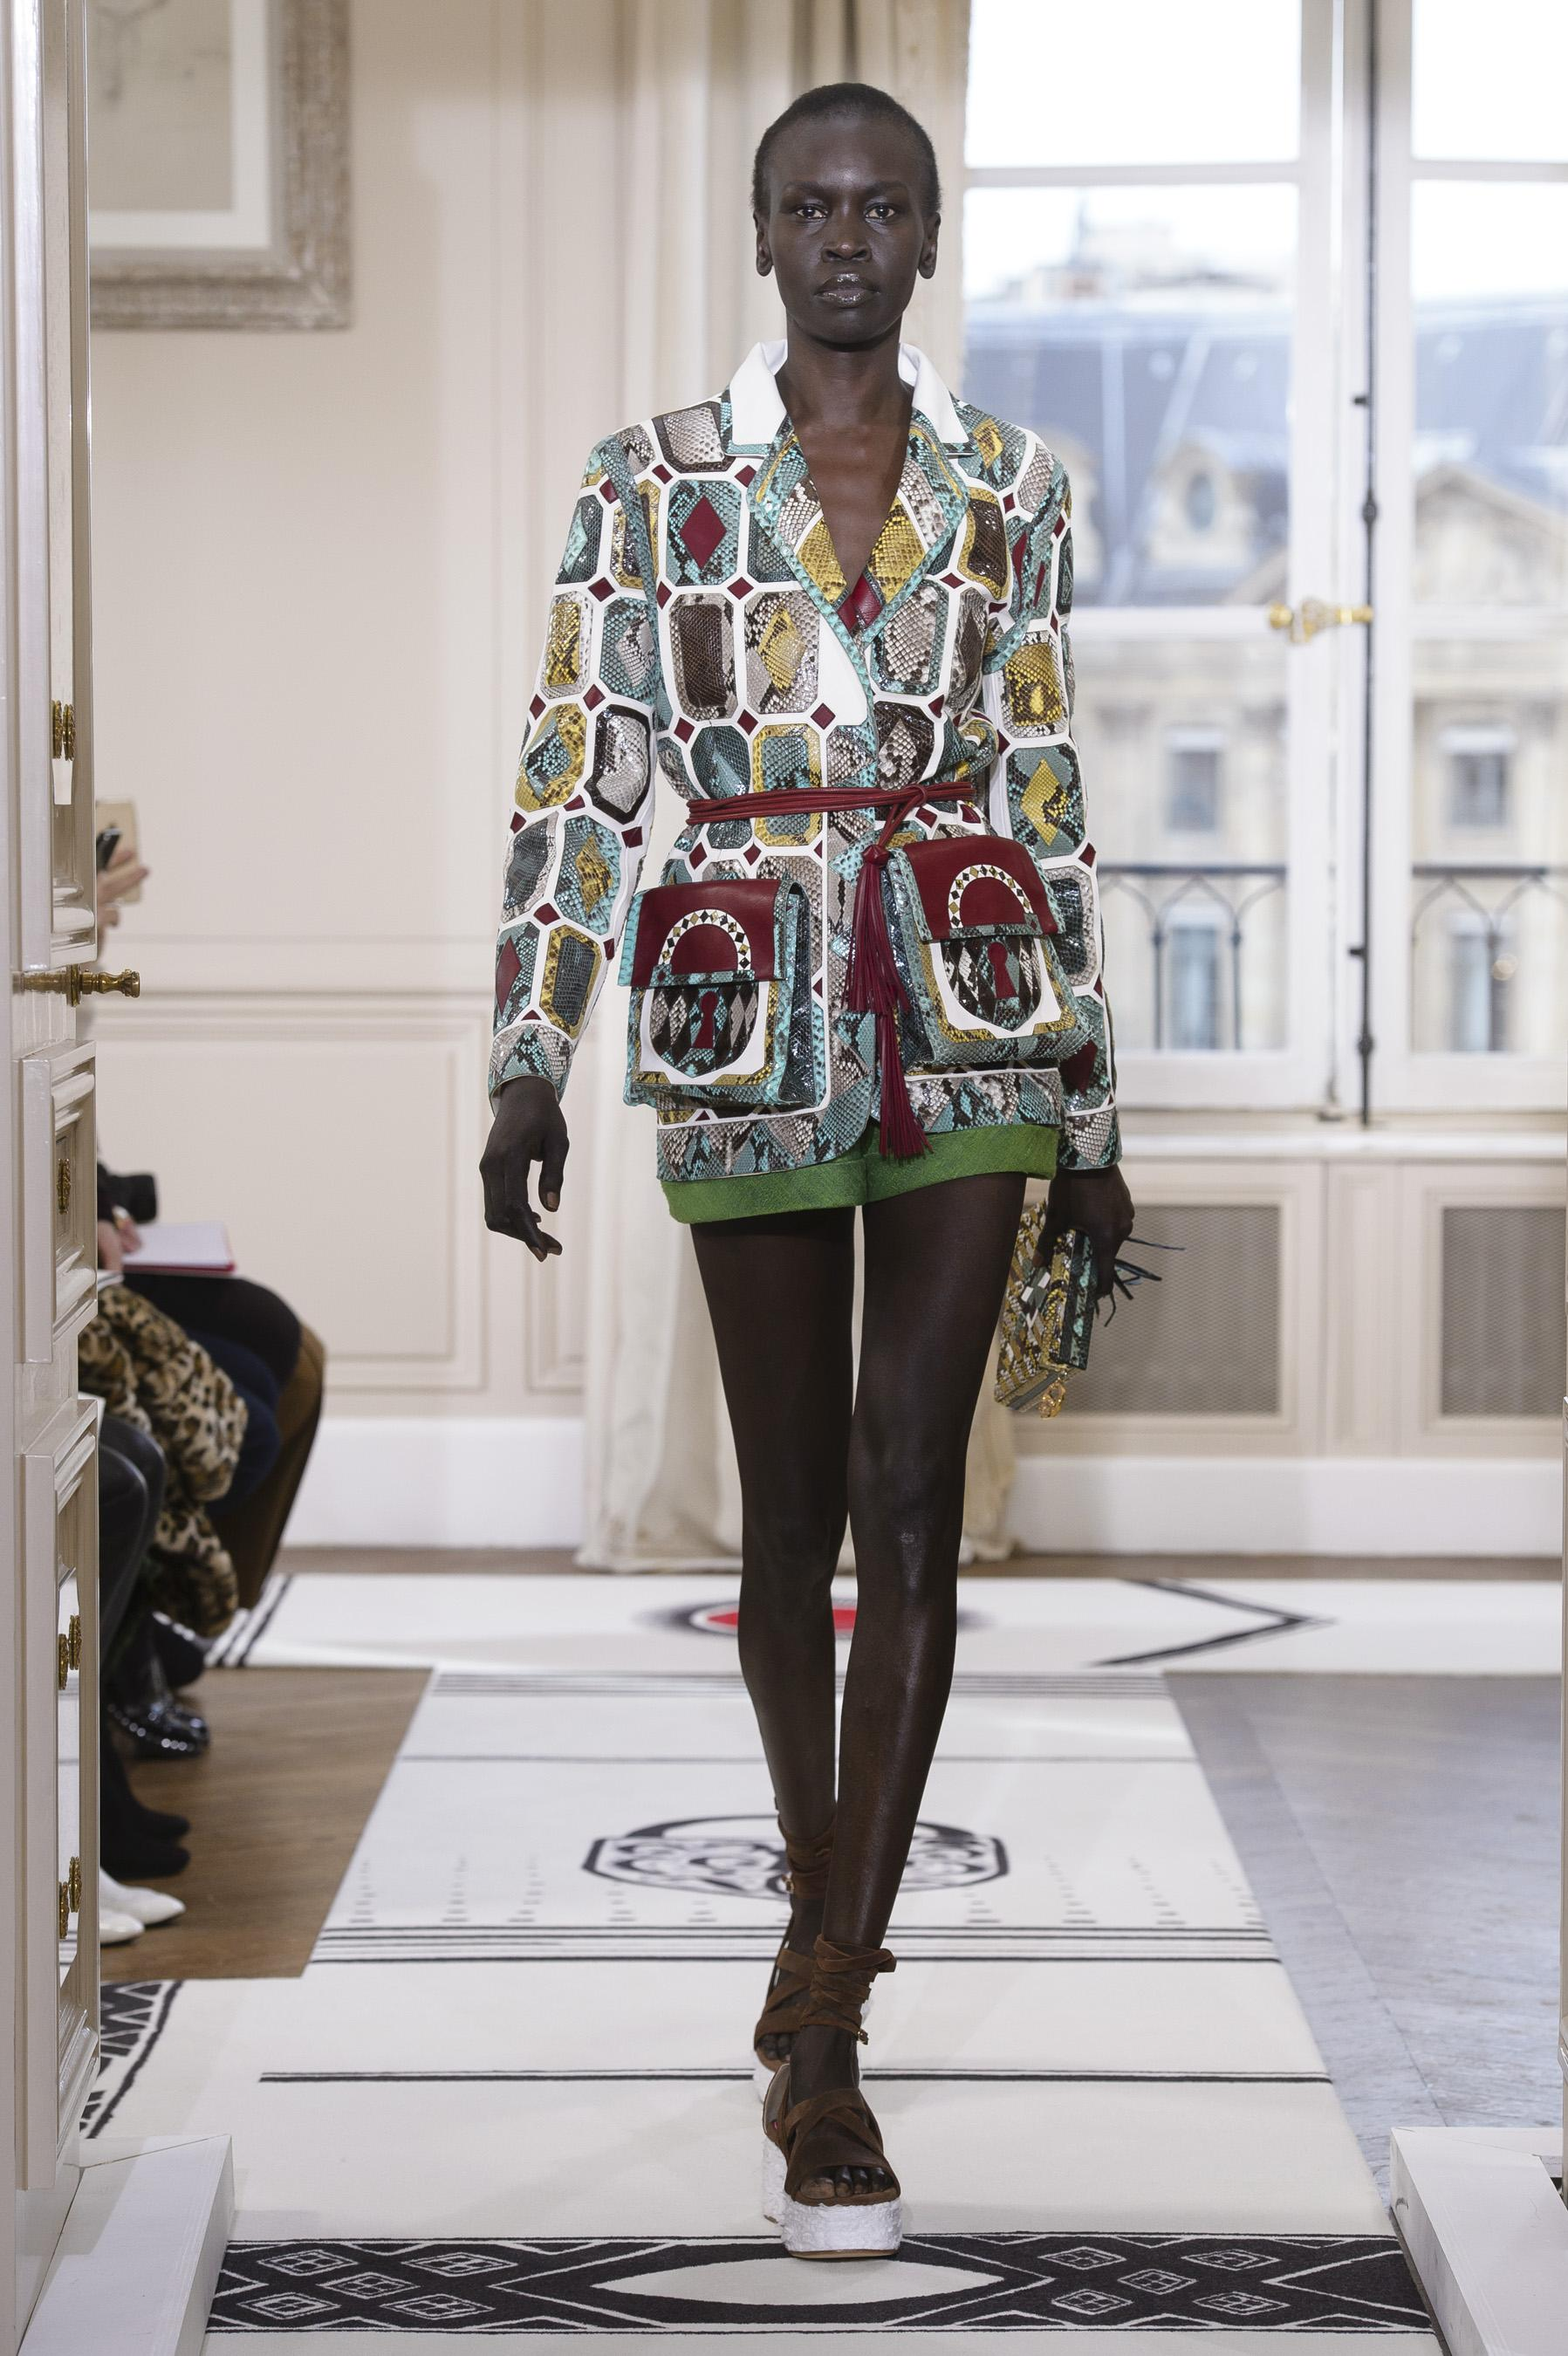 af43d7bb7d defile-schiaparelli-printemps-ete-2018-paris-look-7.jpg